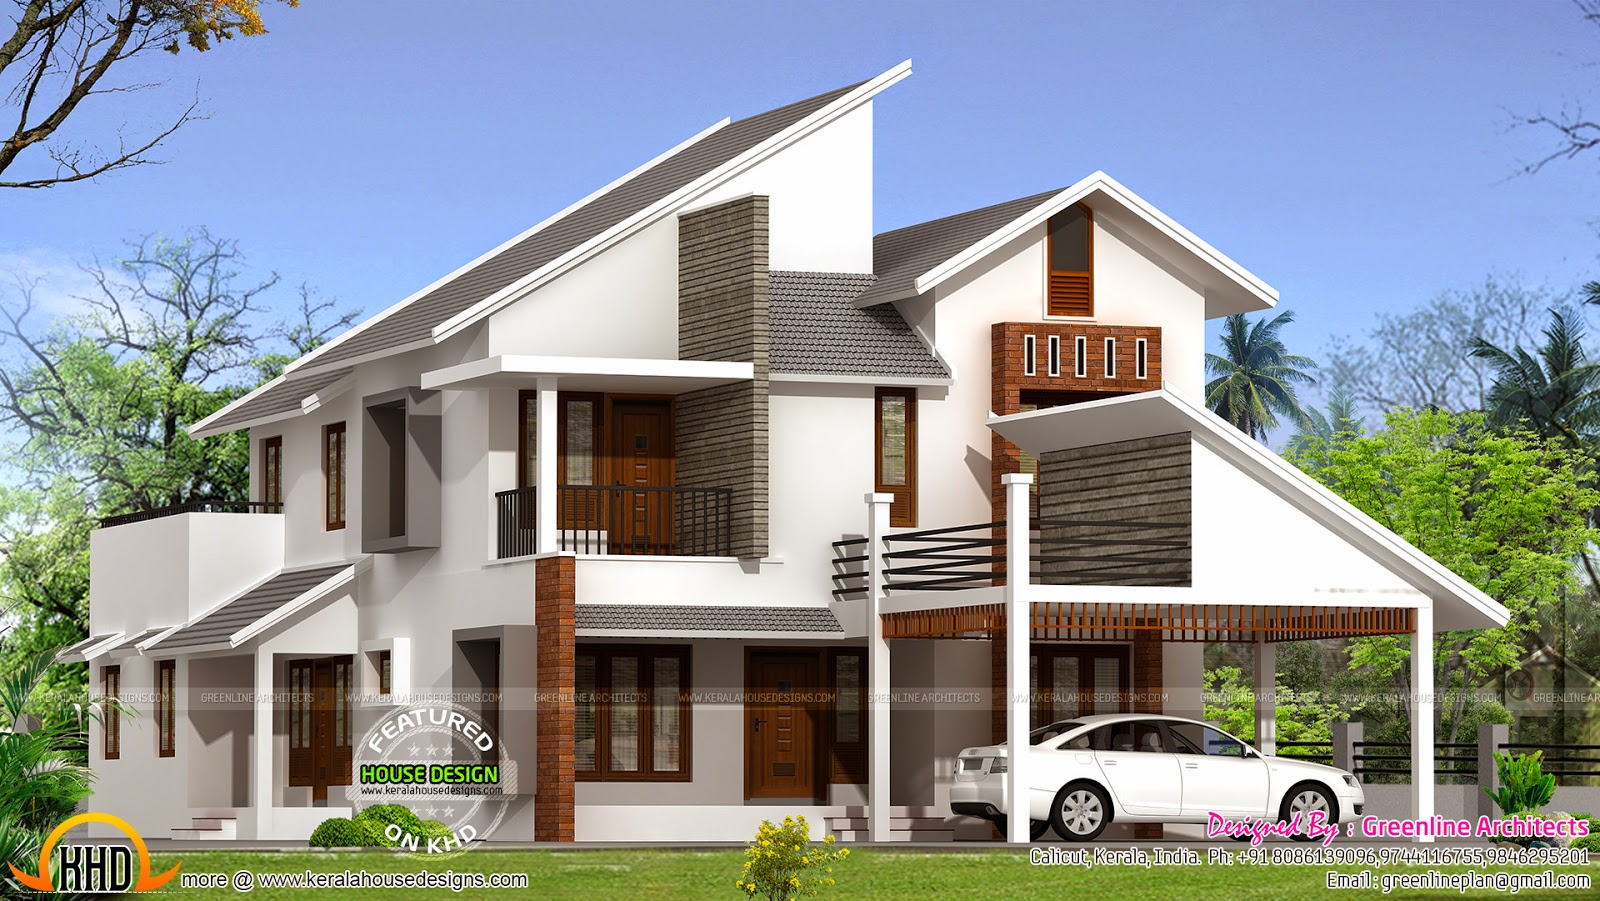 New modern house plan kerala home design and floor plans for Modern house design plans